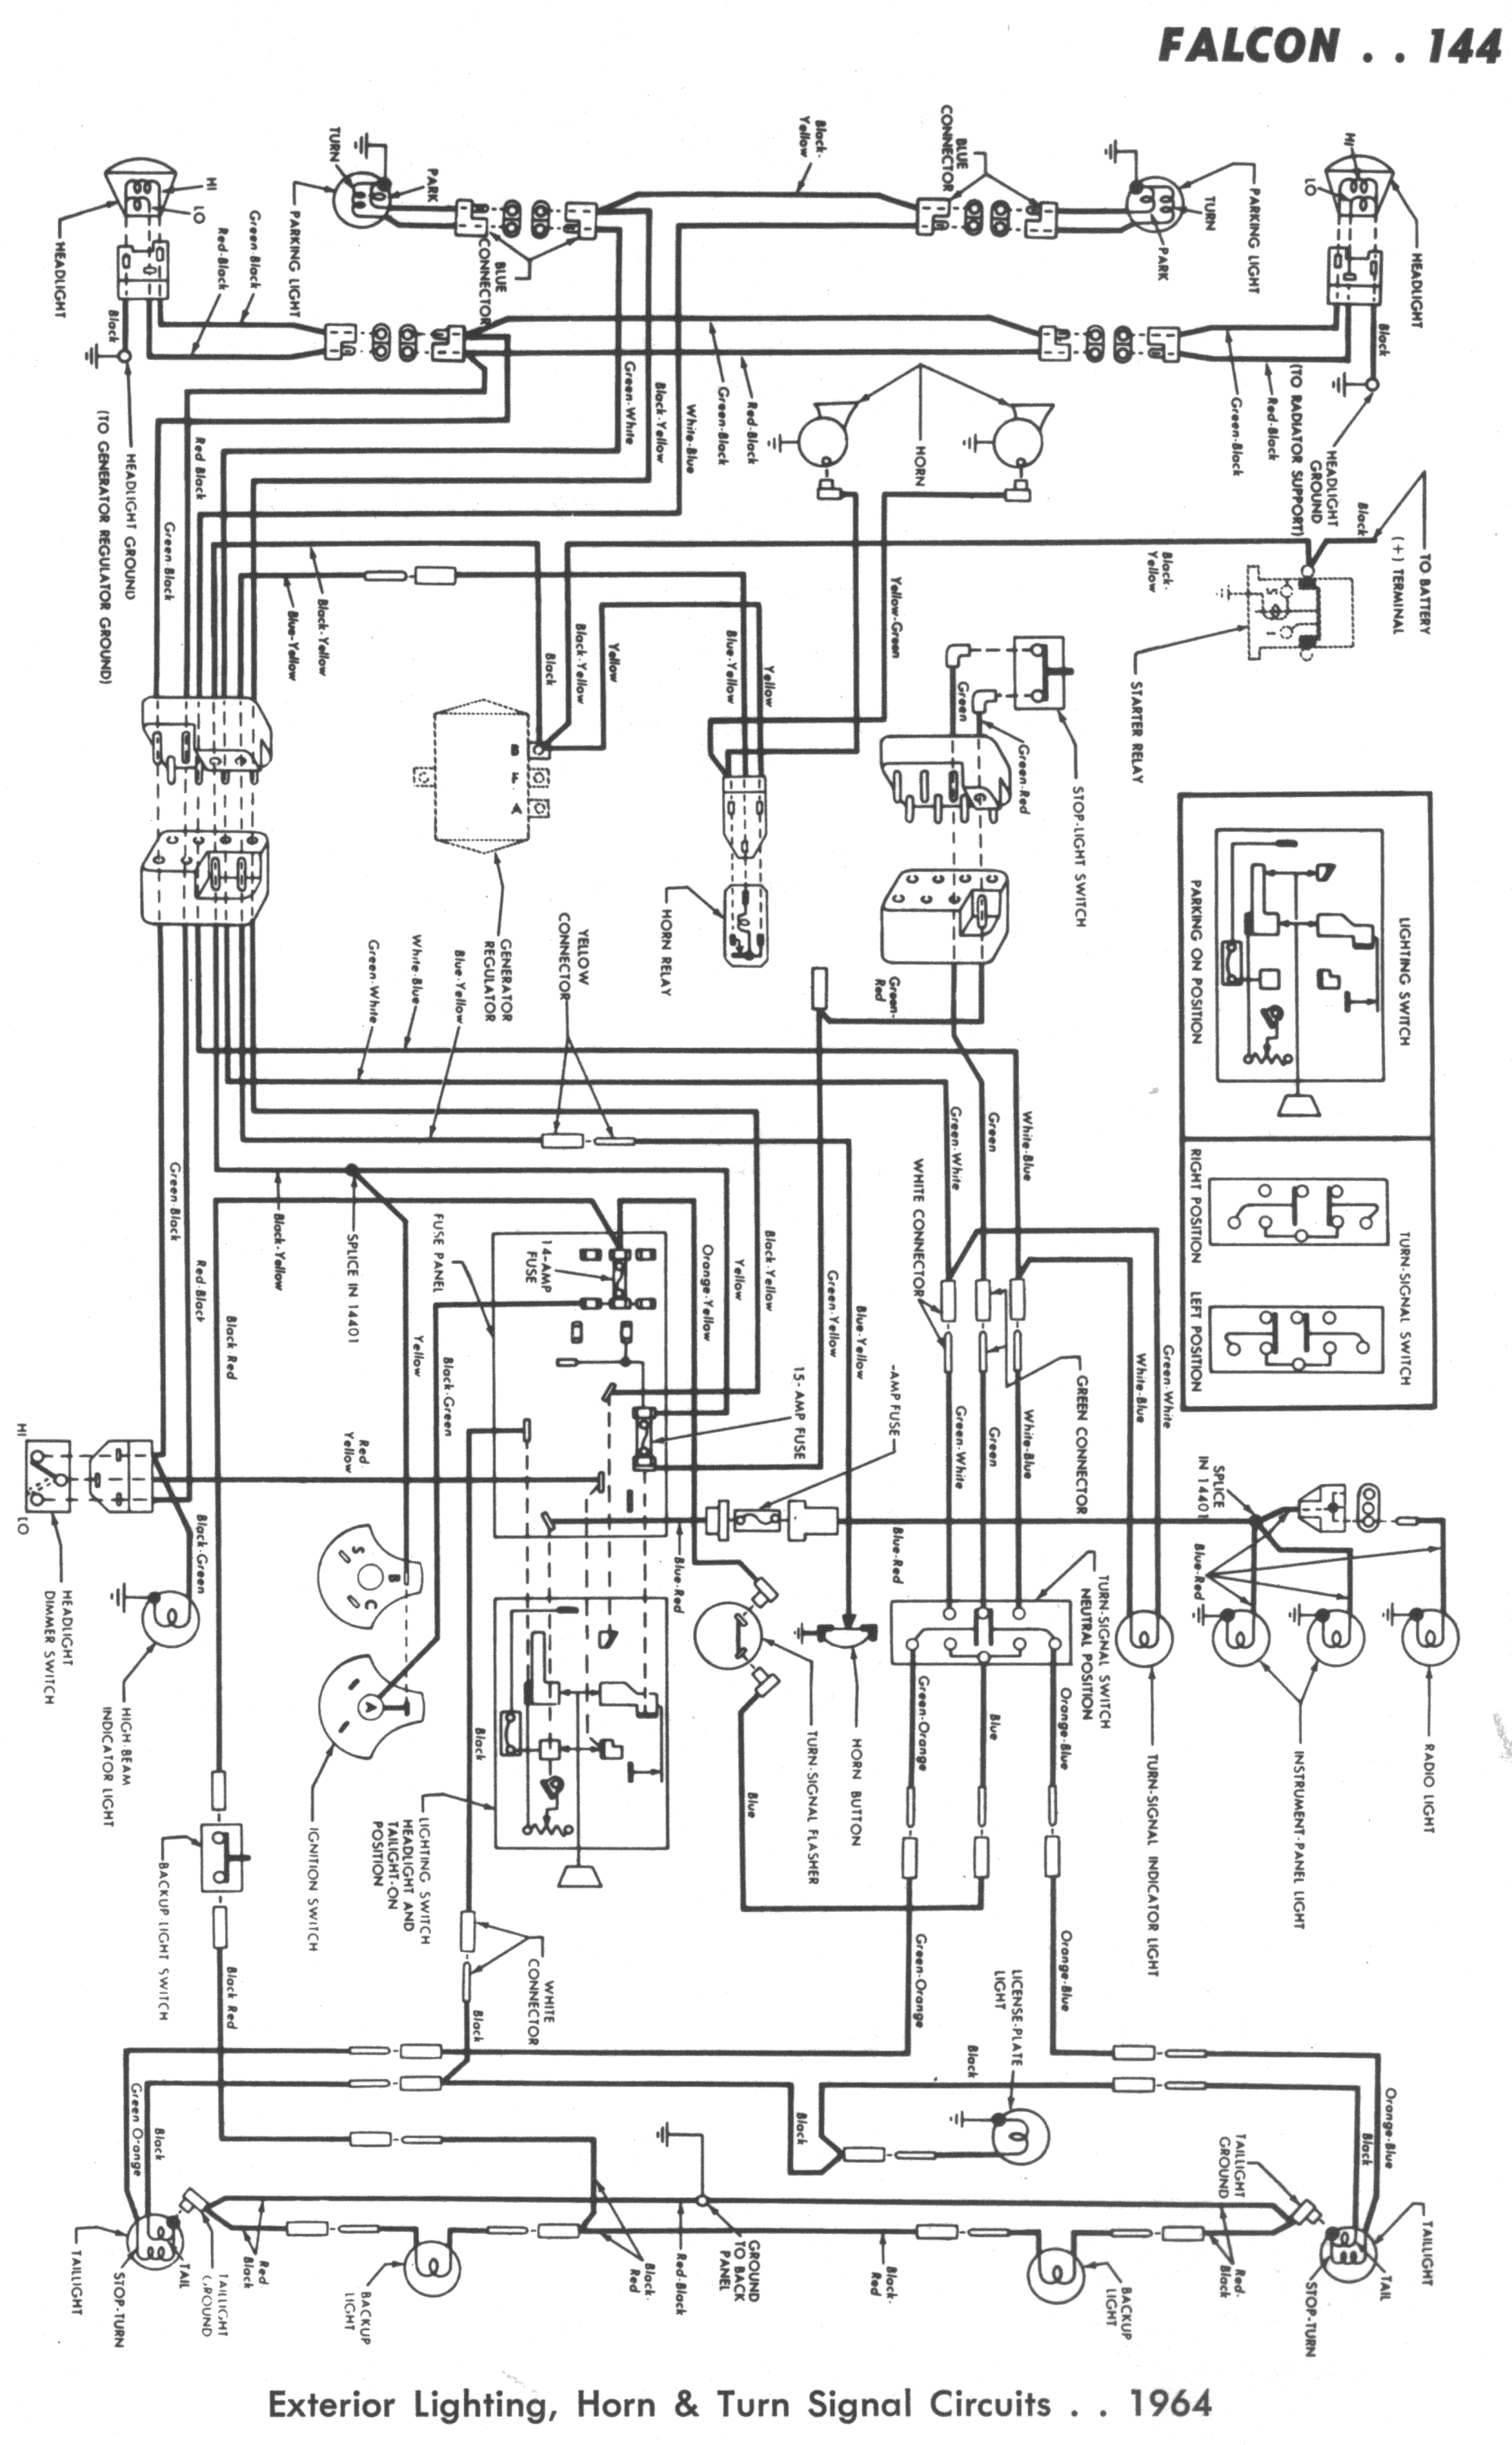 hight resolution of 1964 ford falcon generator diagram 34 wiring diagram 51 ford f100 64 ford f100